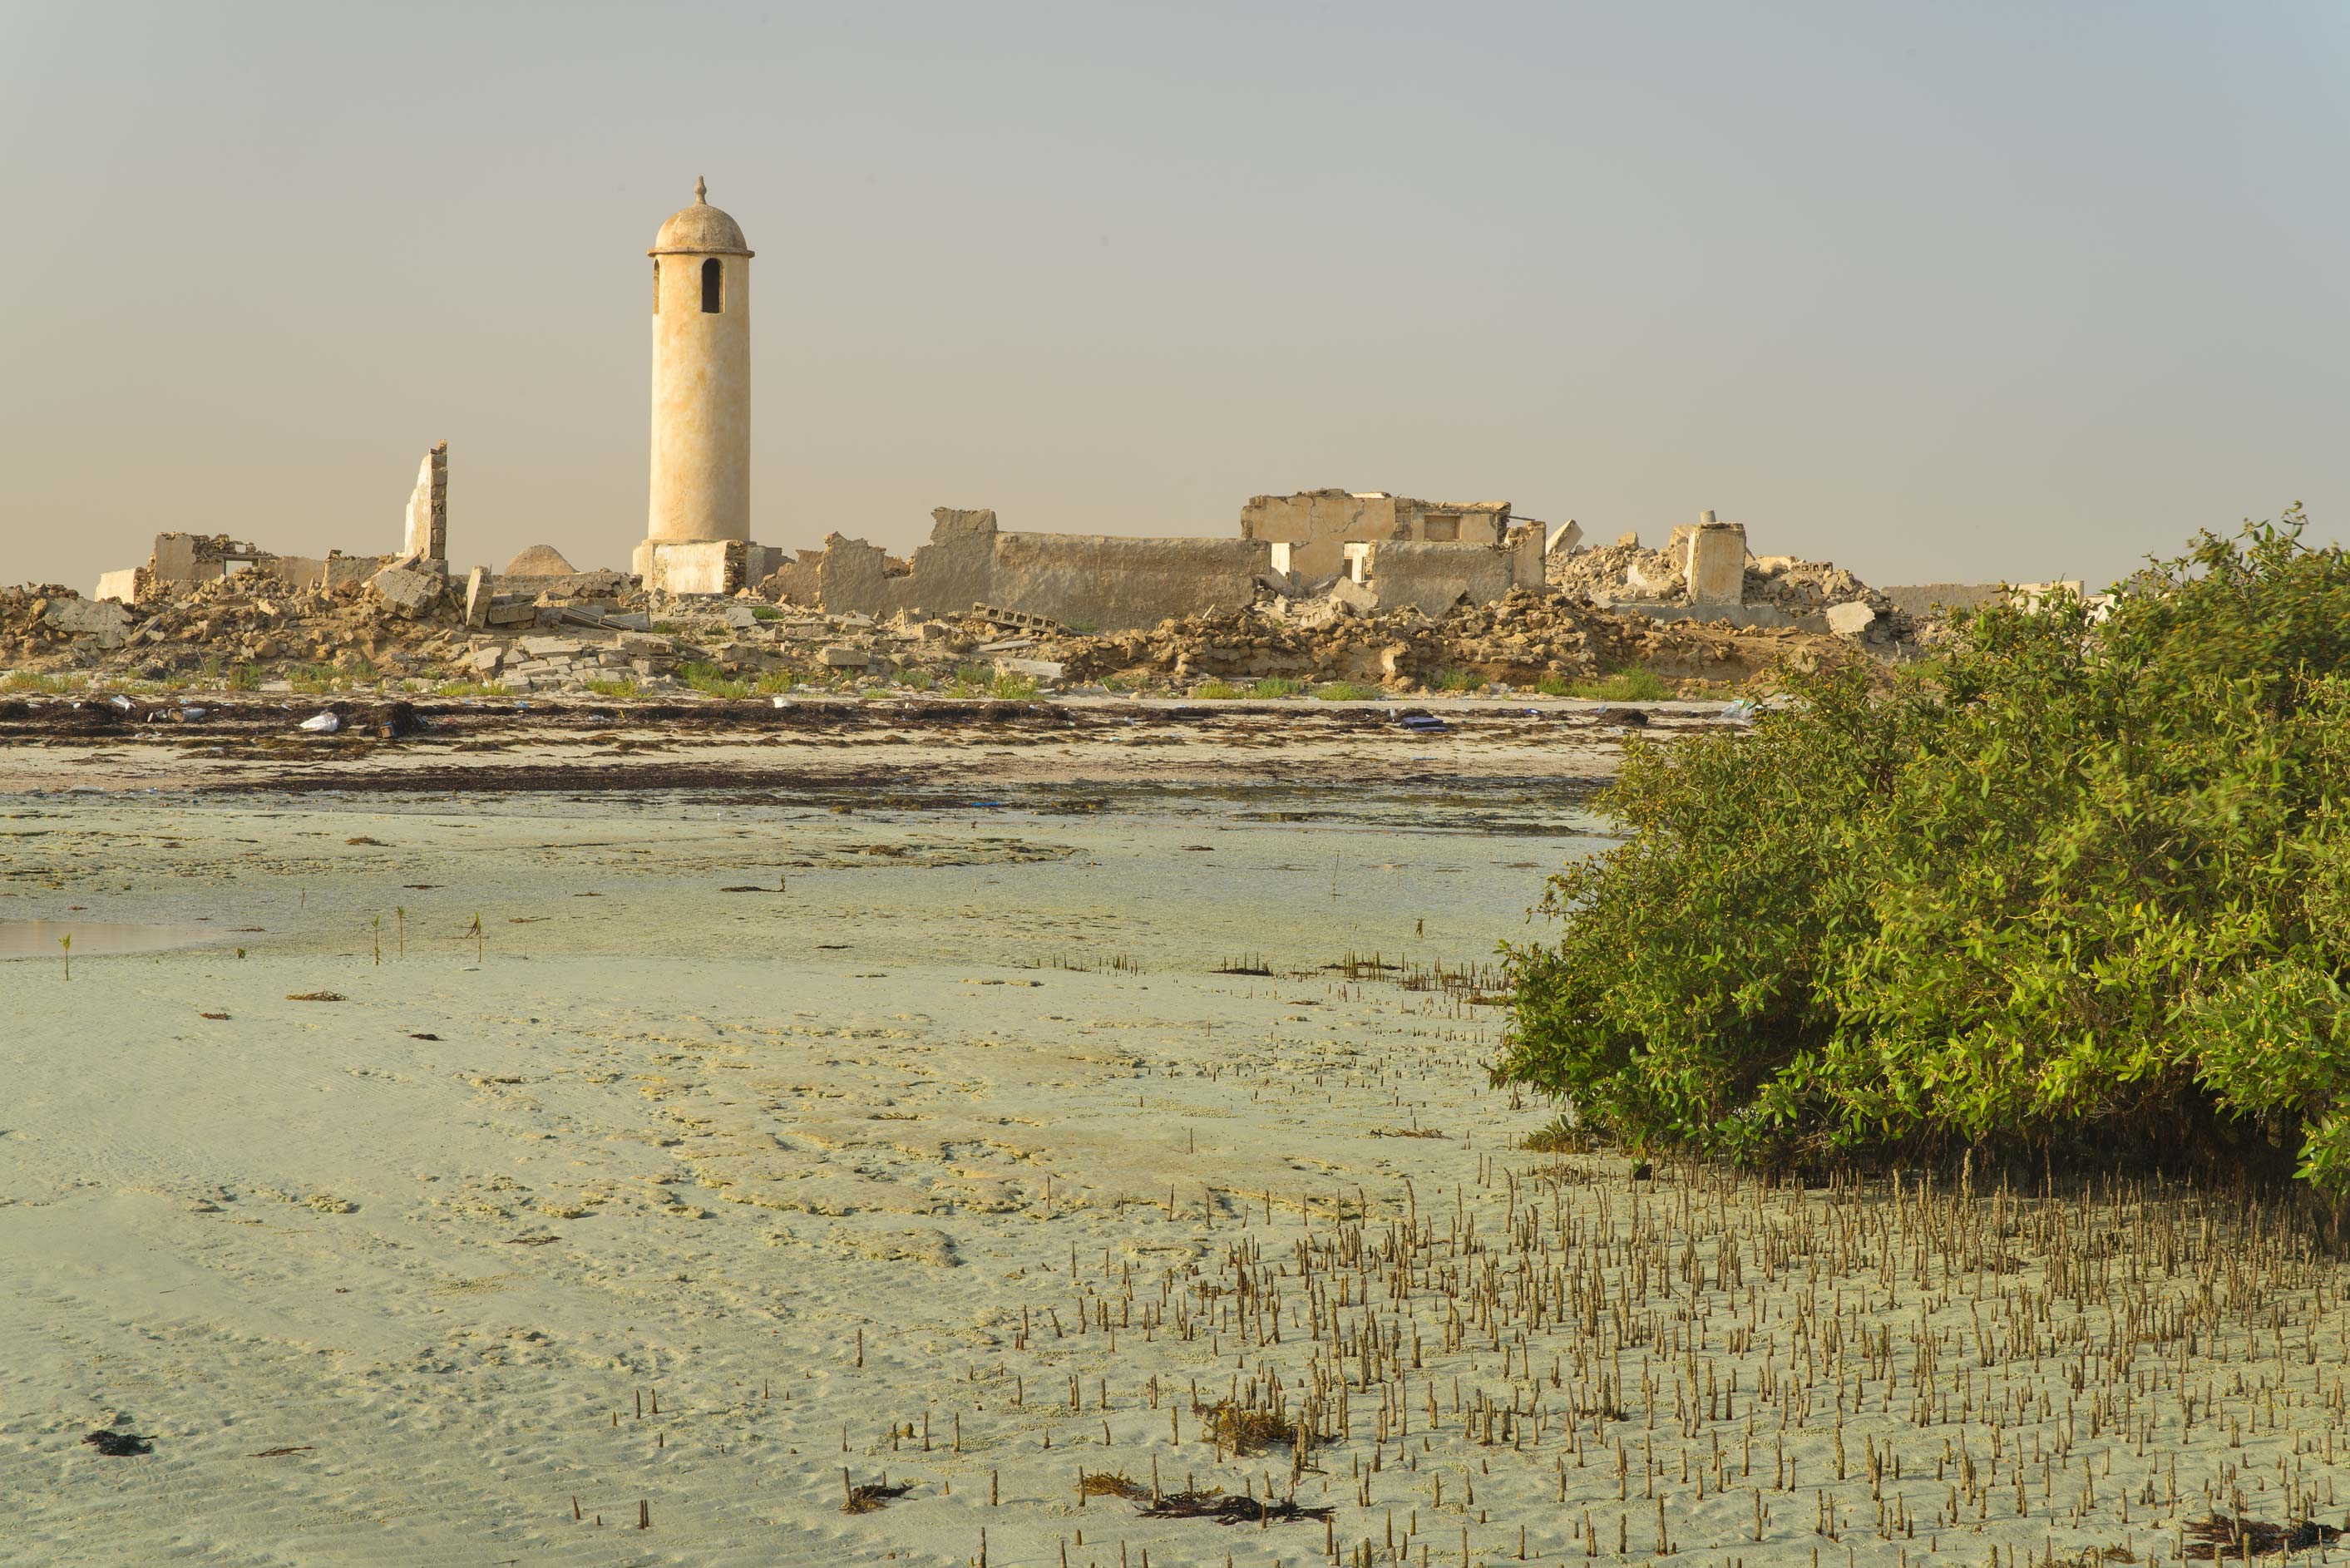 Minaret of a mosque in Al Areesh (Arish), view from a beach. Northern Qatar